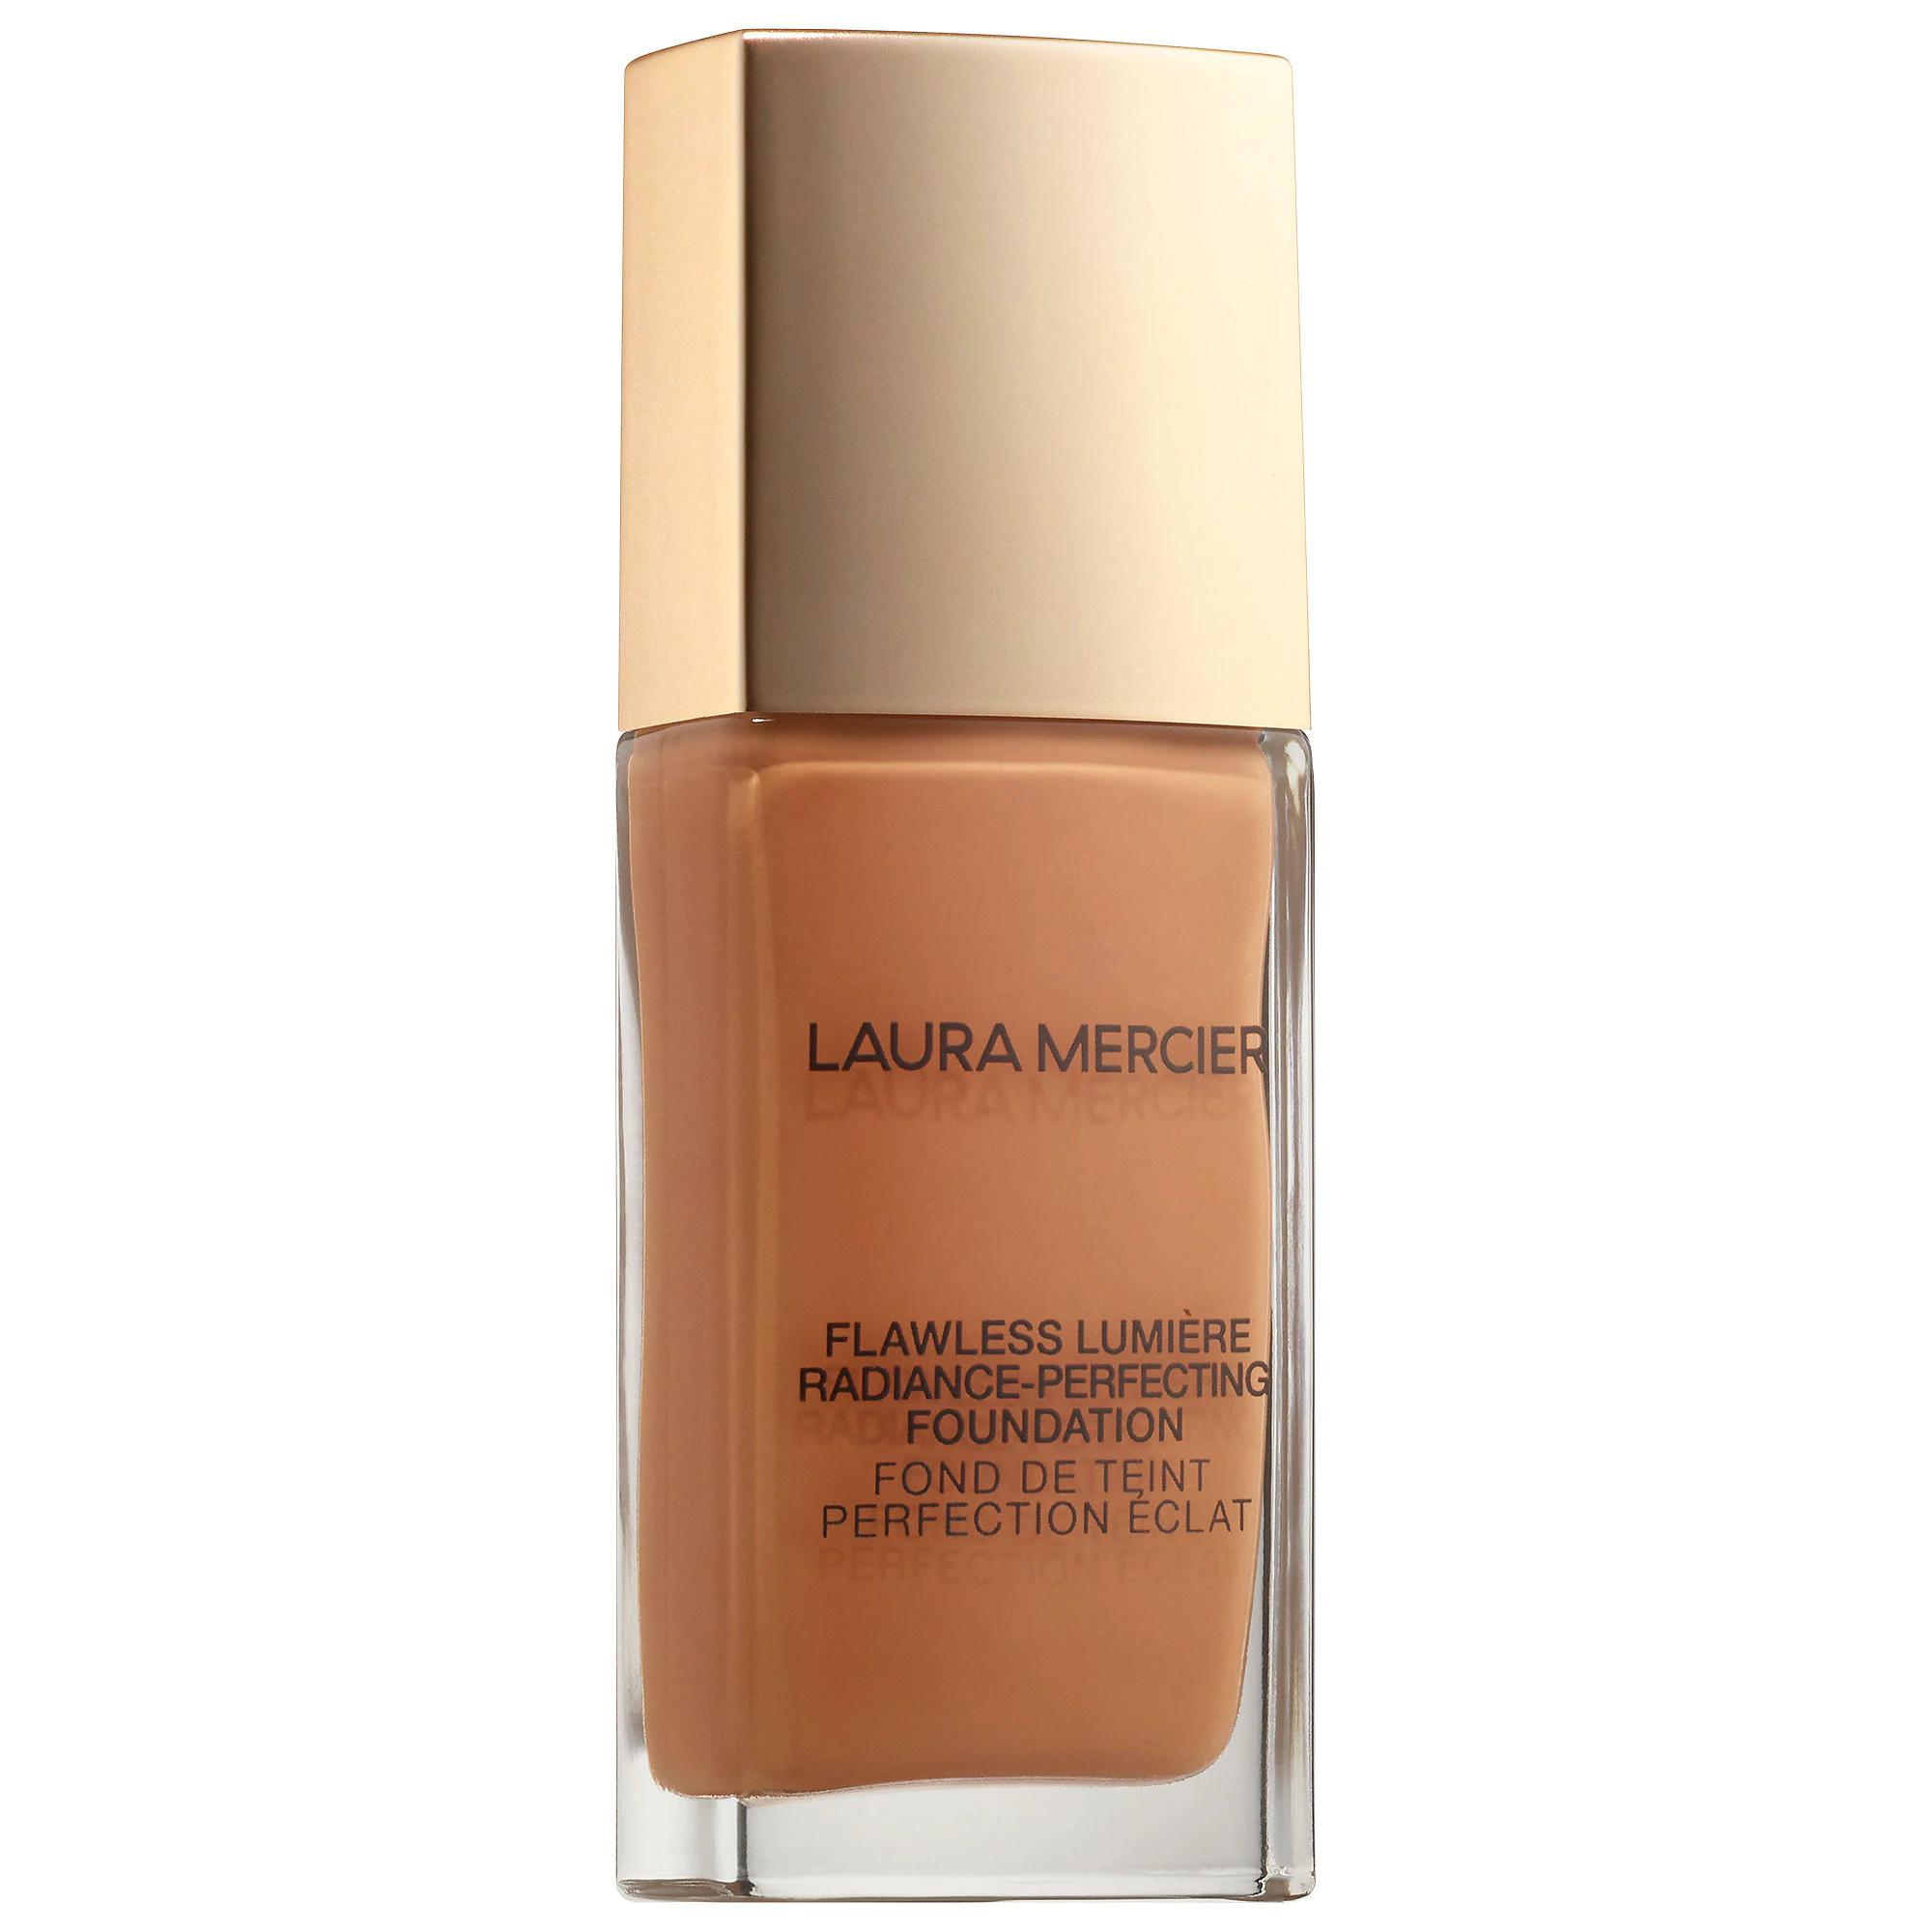 Laura Mercier Flawless Lumiere Radiance-Perfecting Foundation Pecan 5N1